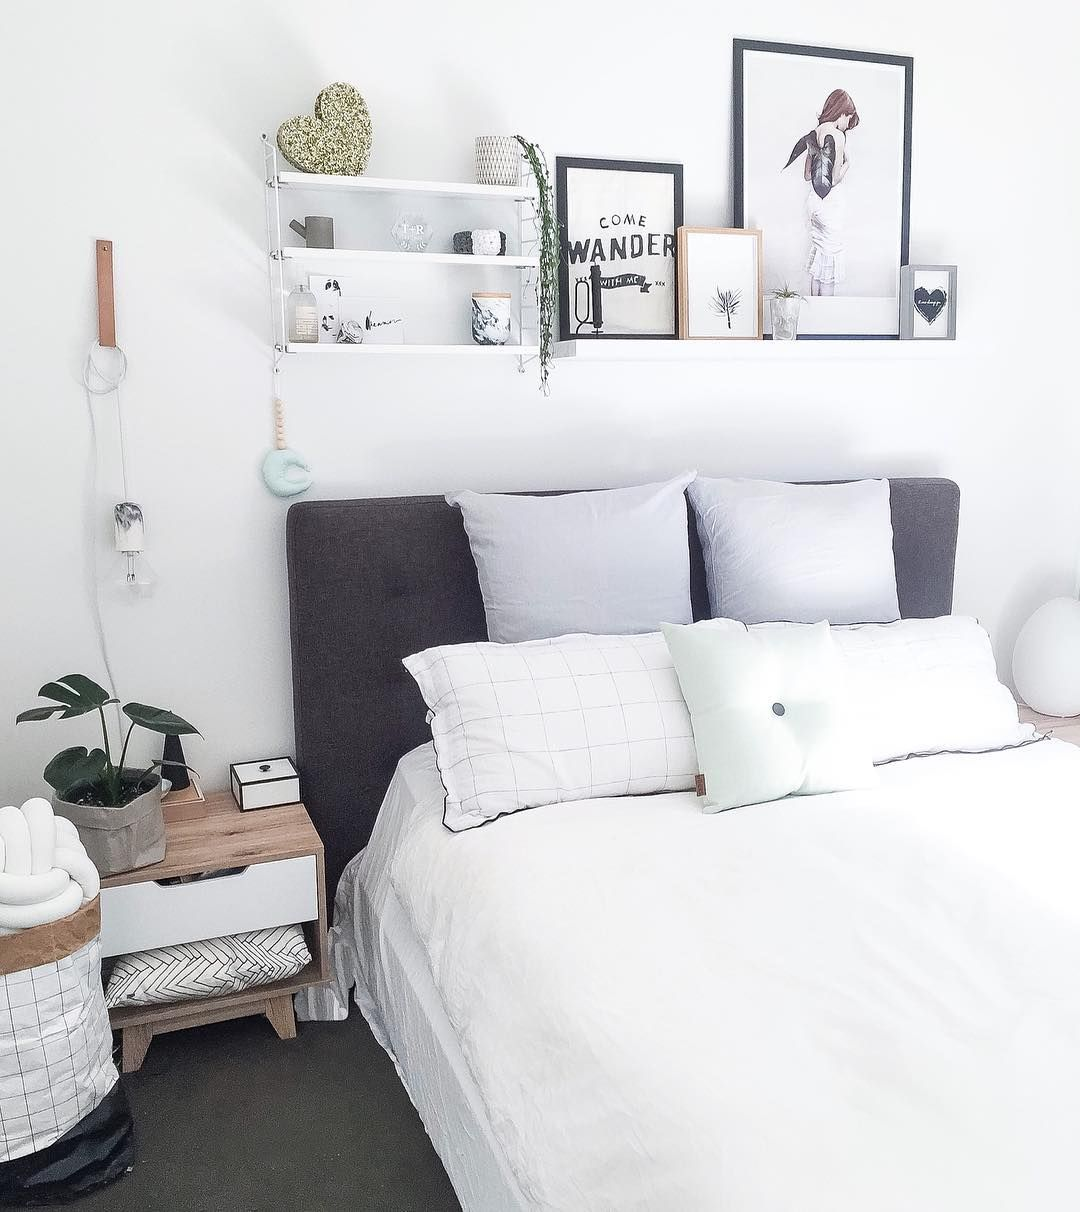 20 Times The Internet Showed Us That Shelves Above The Bed